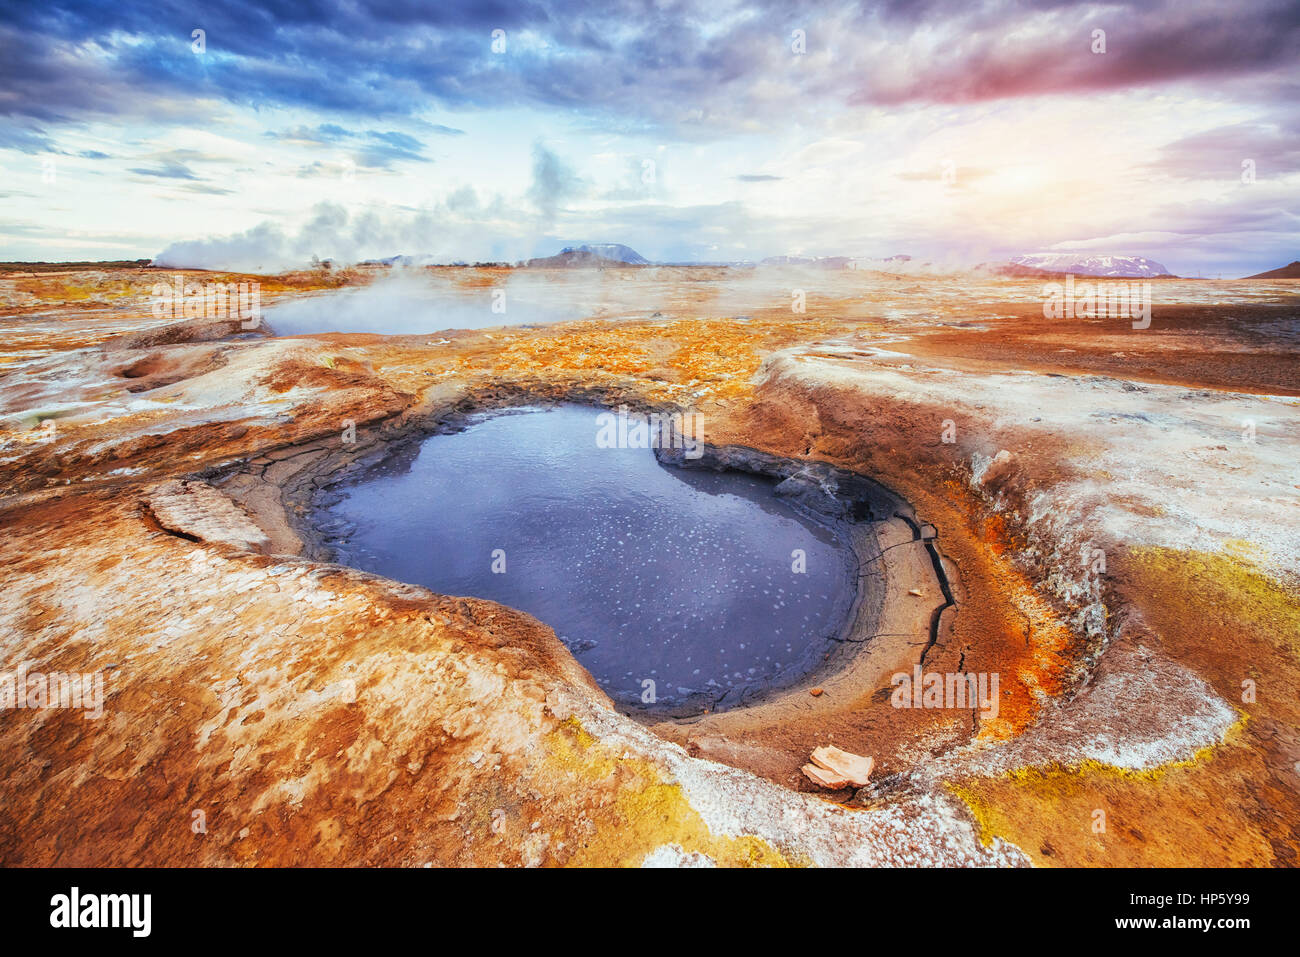 Fumarole field in Namafjall Iceland. The picturesque landscapes forests. - Stock Image